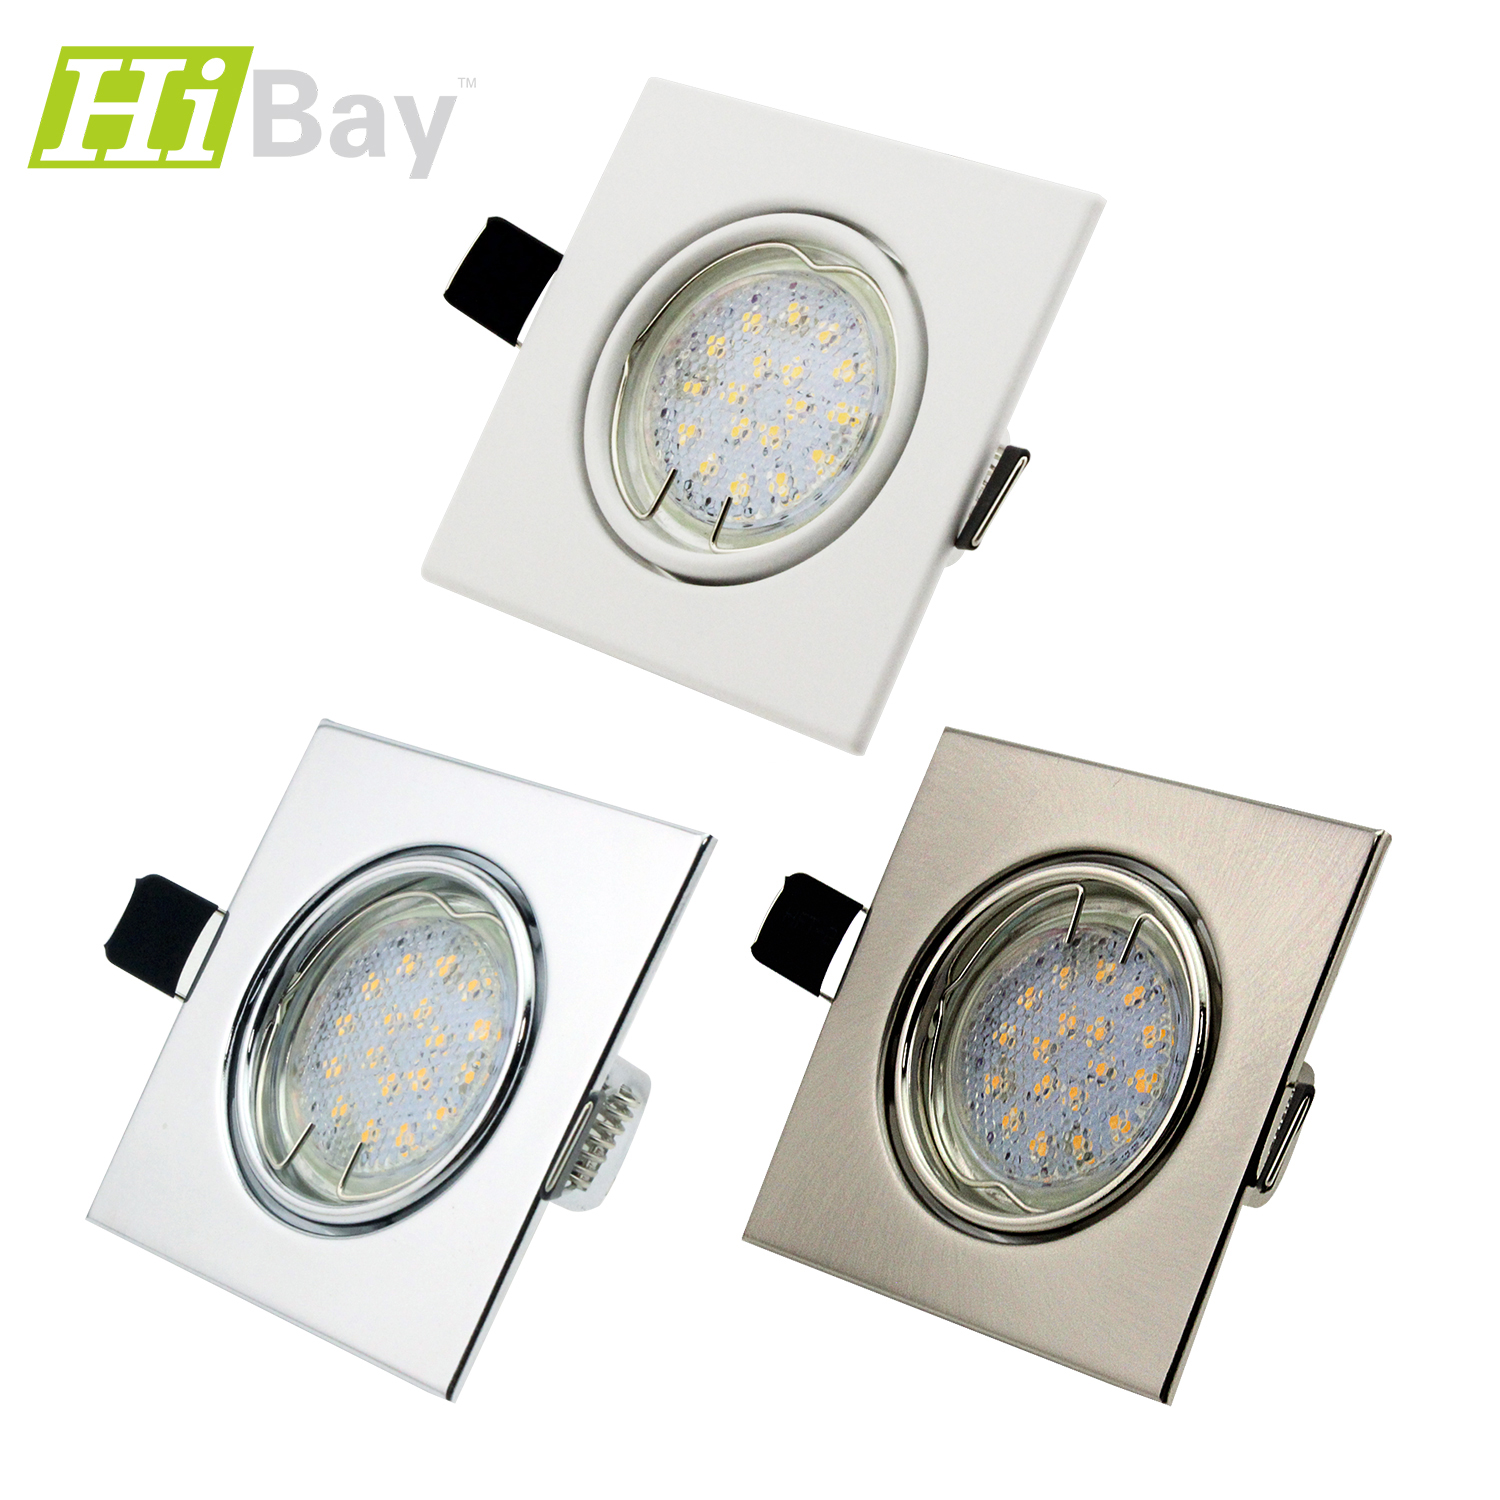 led 12w e27 spot par38 reflektor strahler licht leuchtmittel warmwei smd lampe ebay. Black Bedroom Furniture Sets. Home Design Ideas